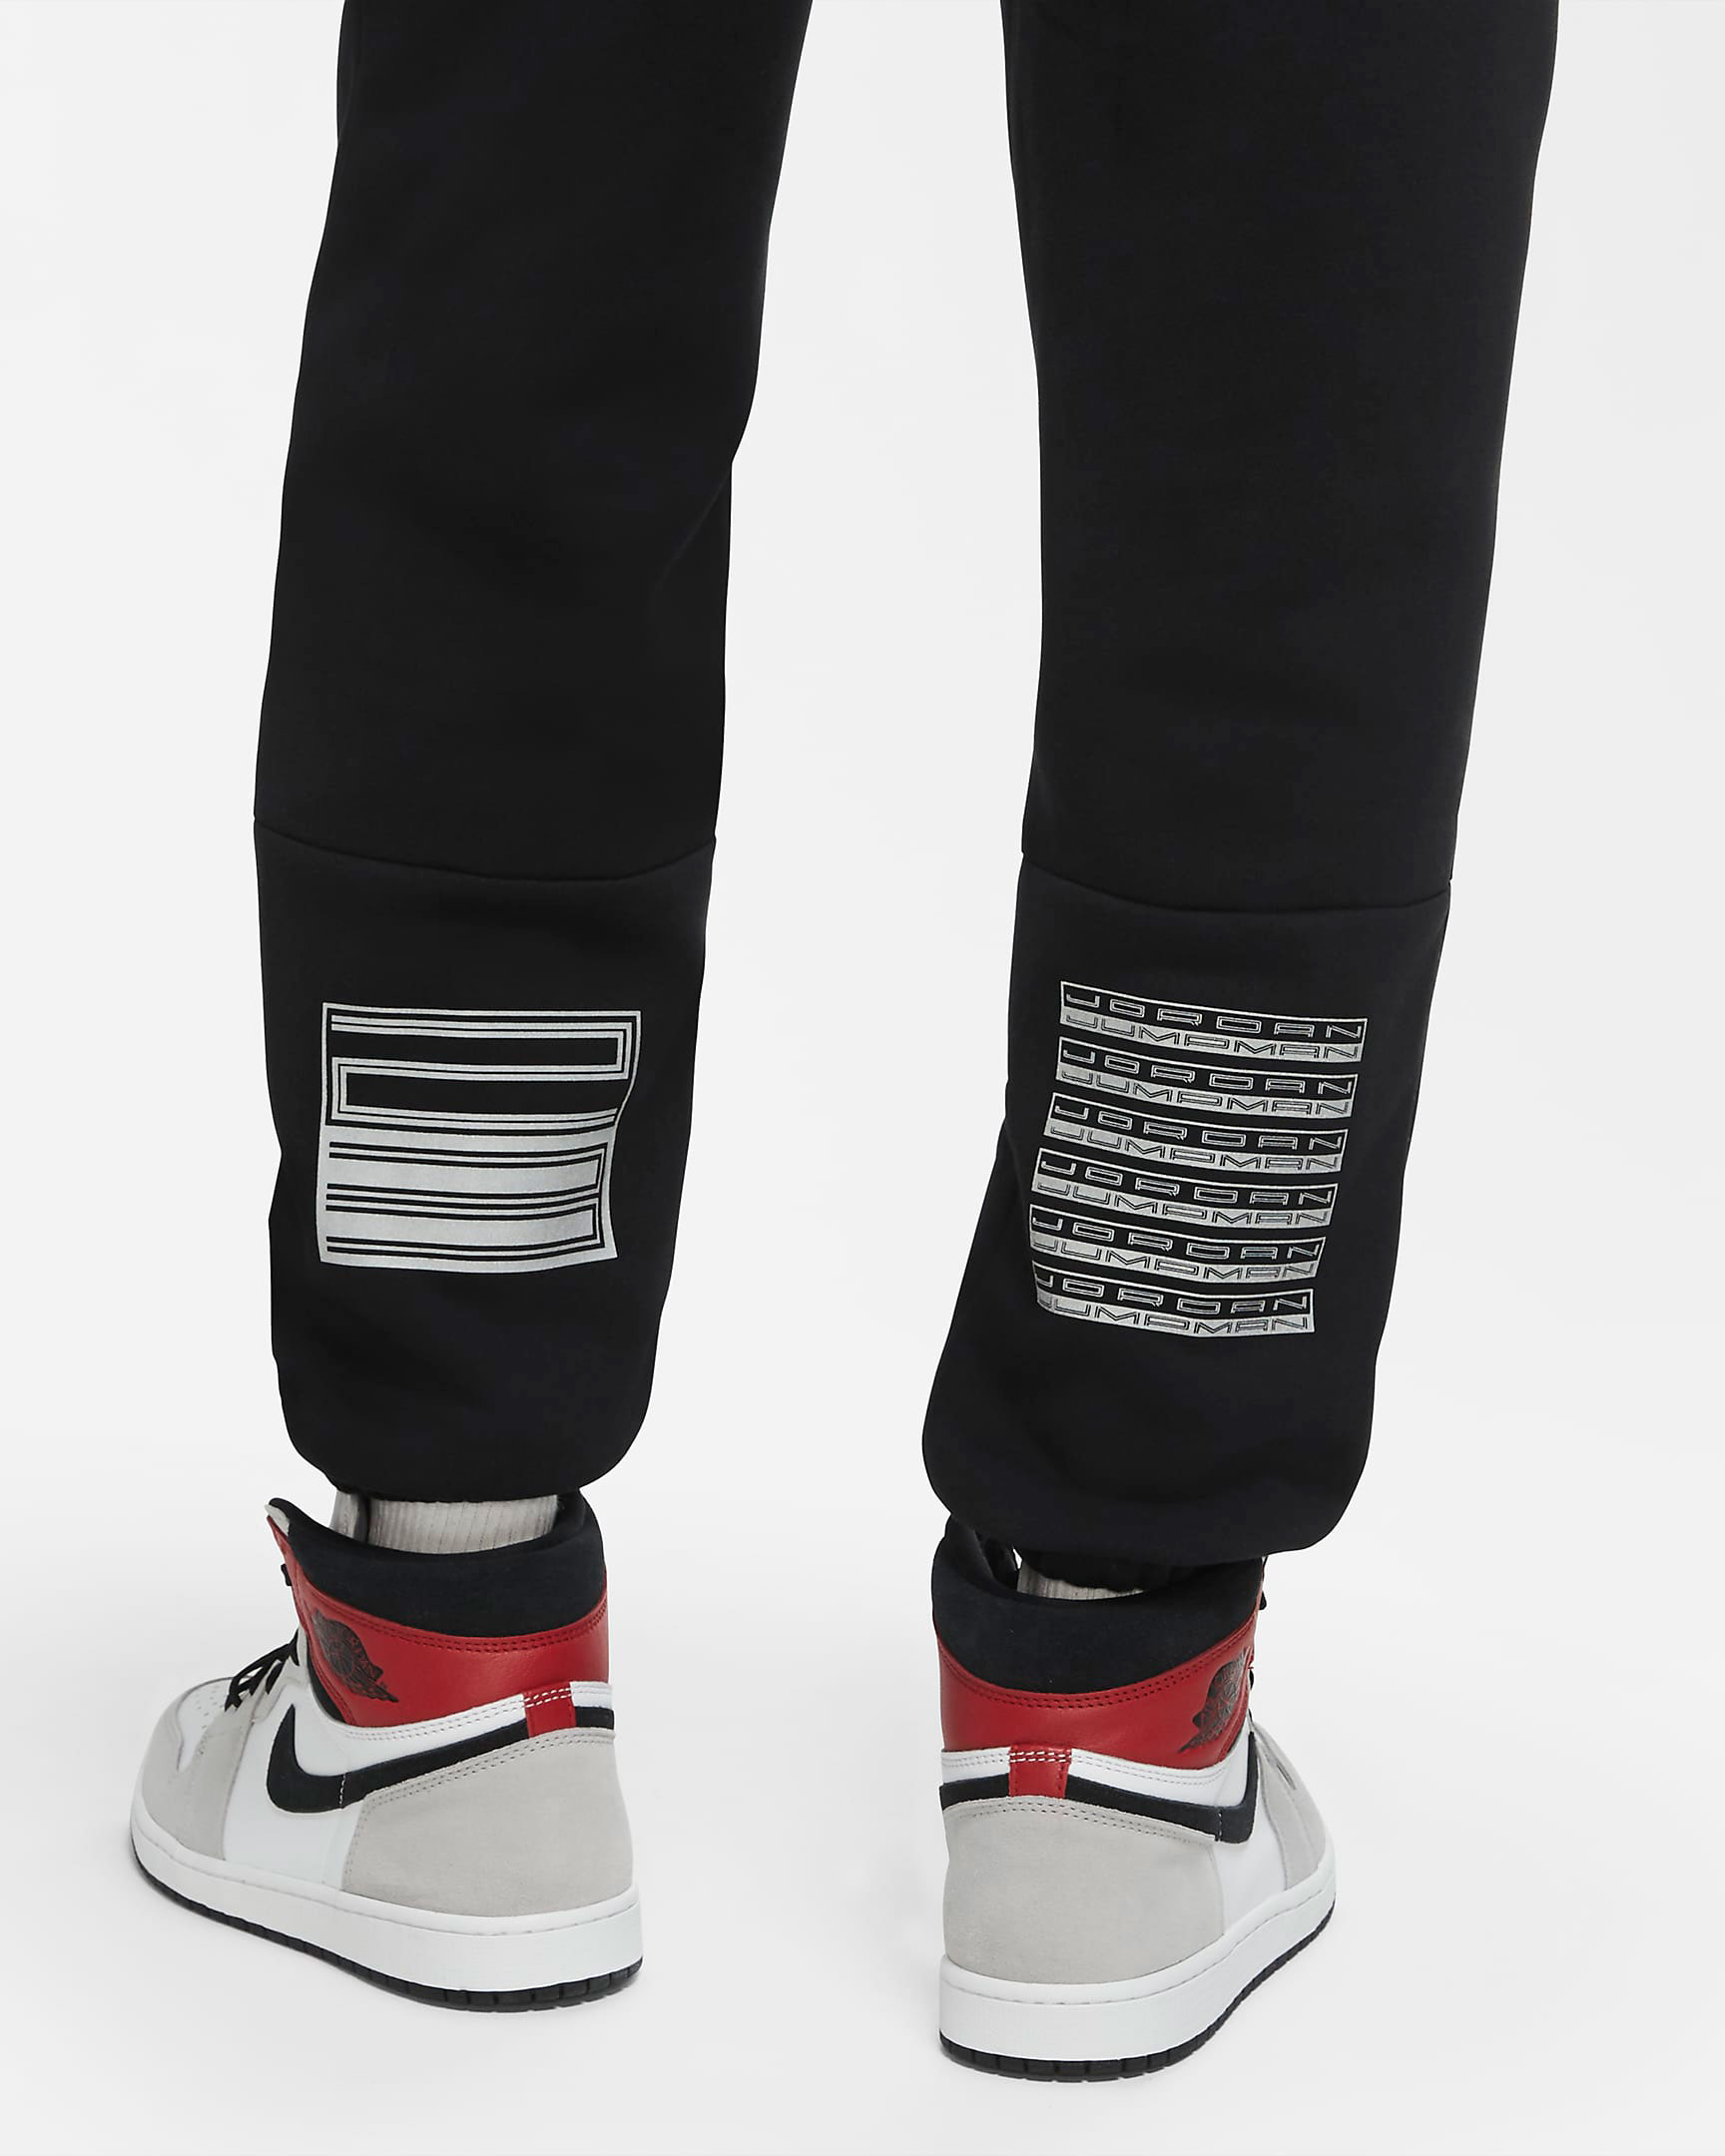 air-jordan-11-jubilee-25th-anniversary-pants-5